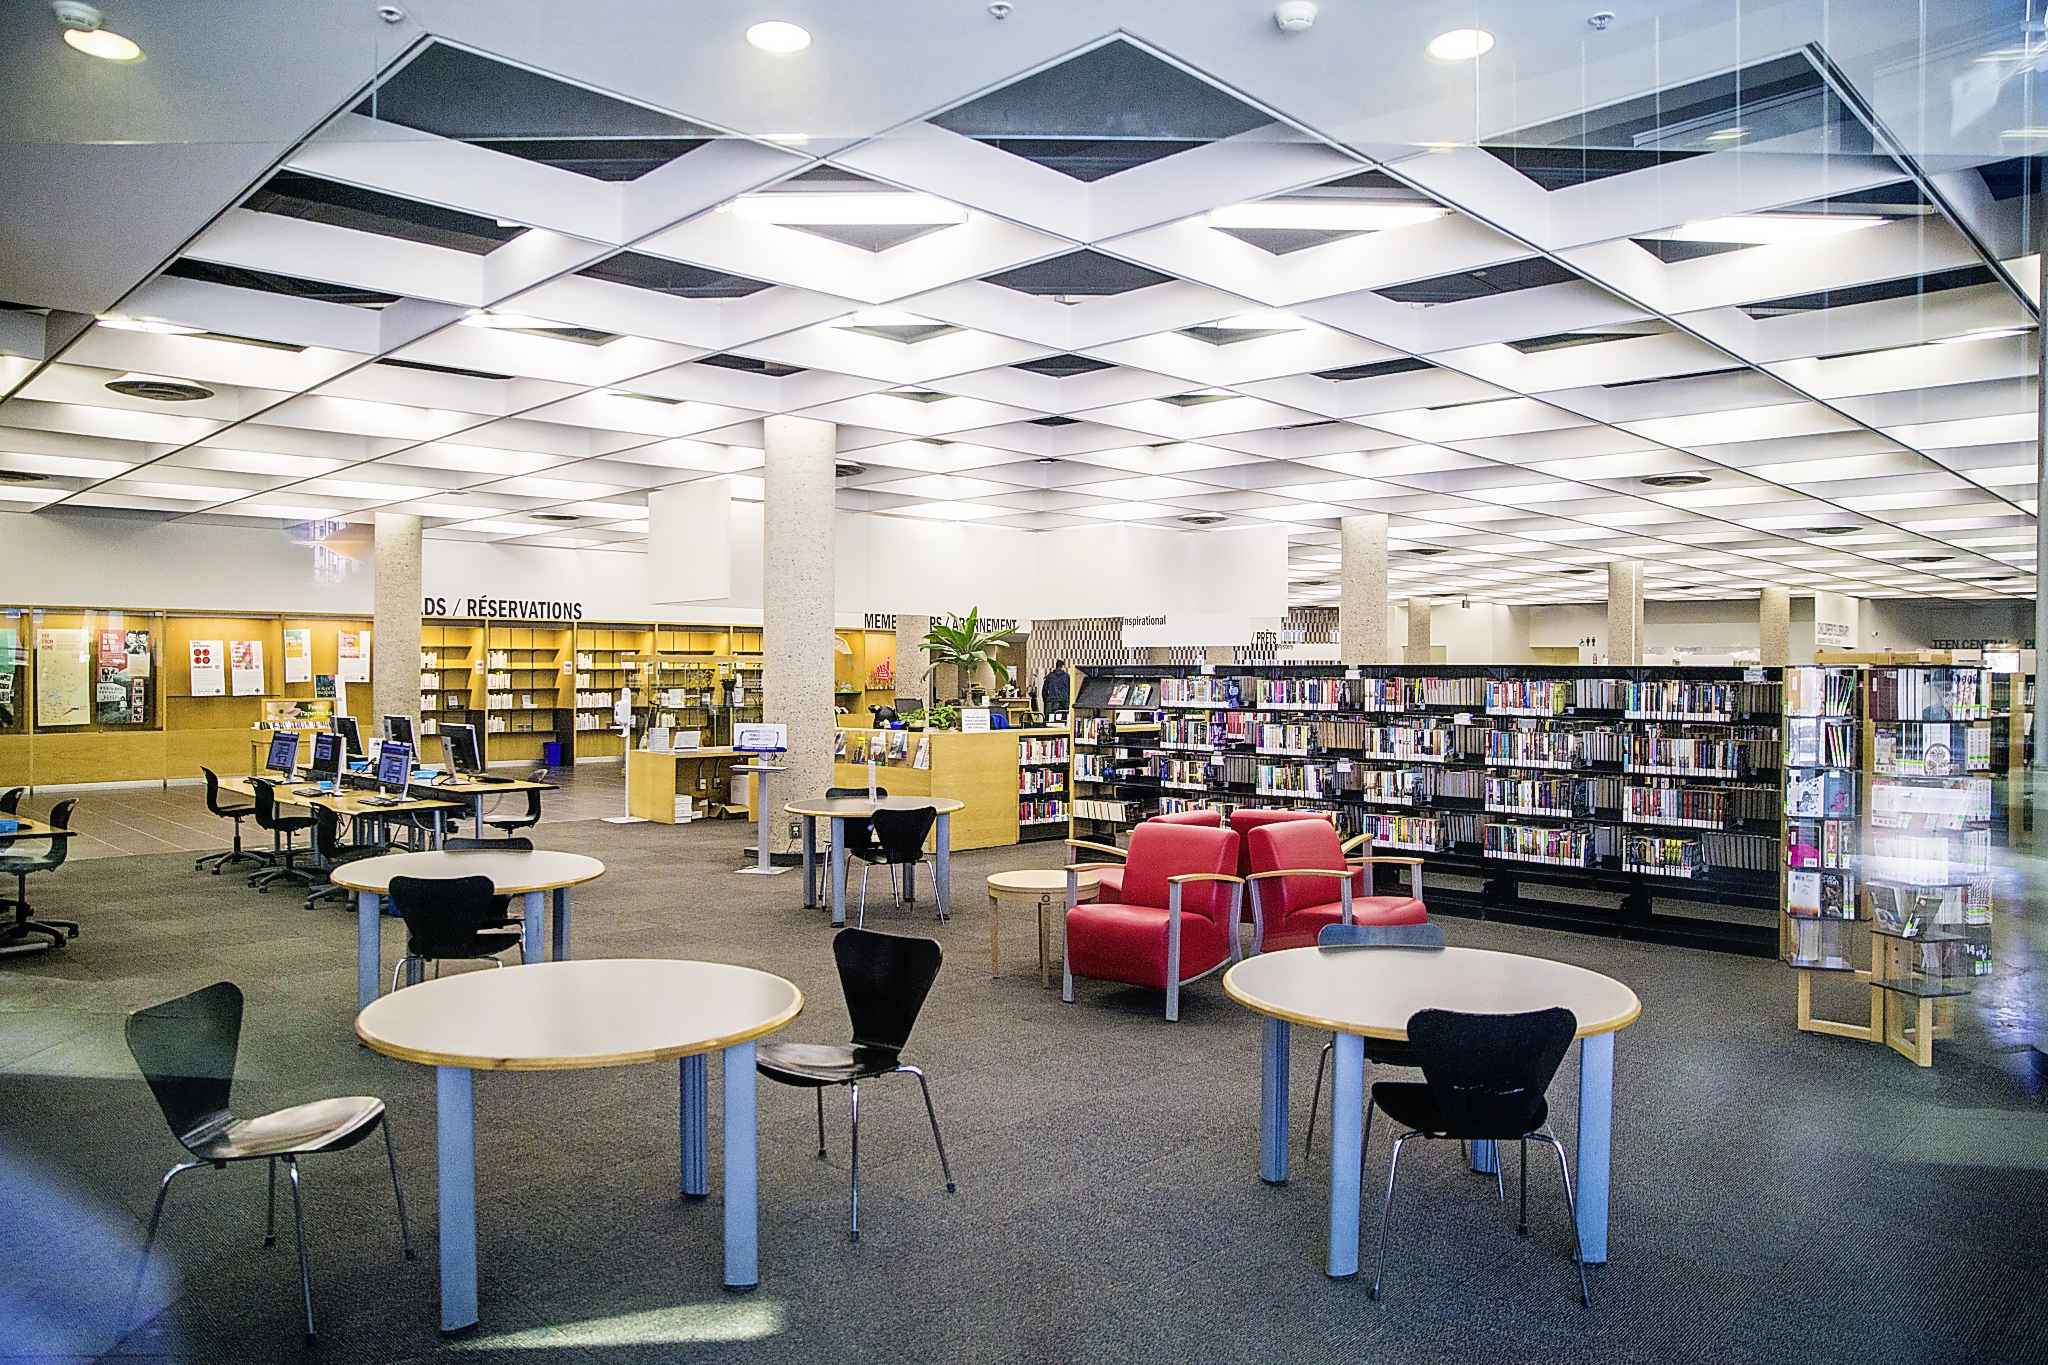 The Millennium Library (above) is open for hold pickups. (Mikaela MacKenzie / Winnipeg Free Press files)